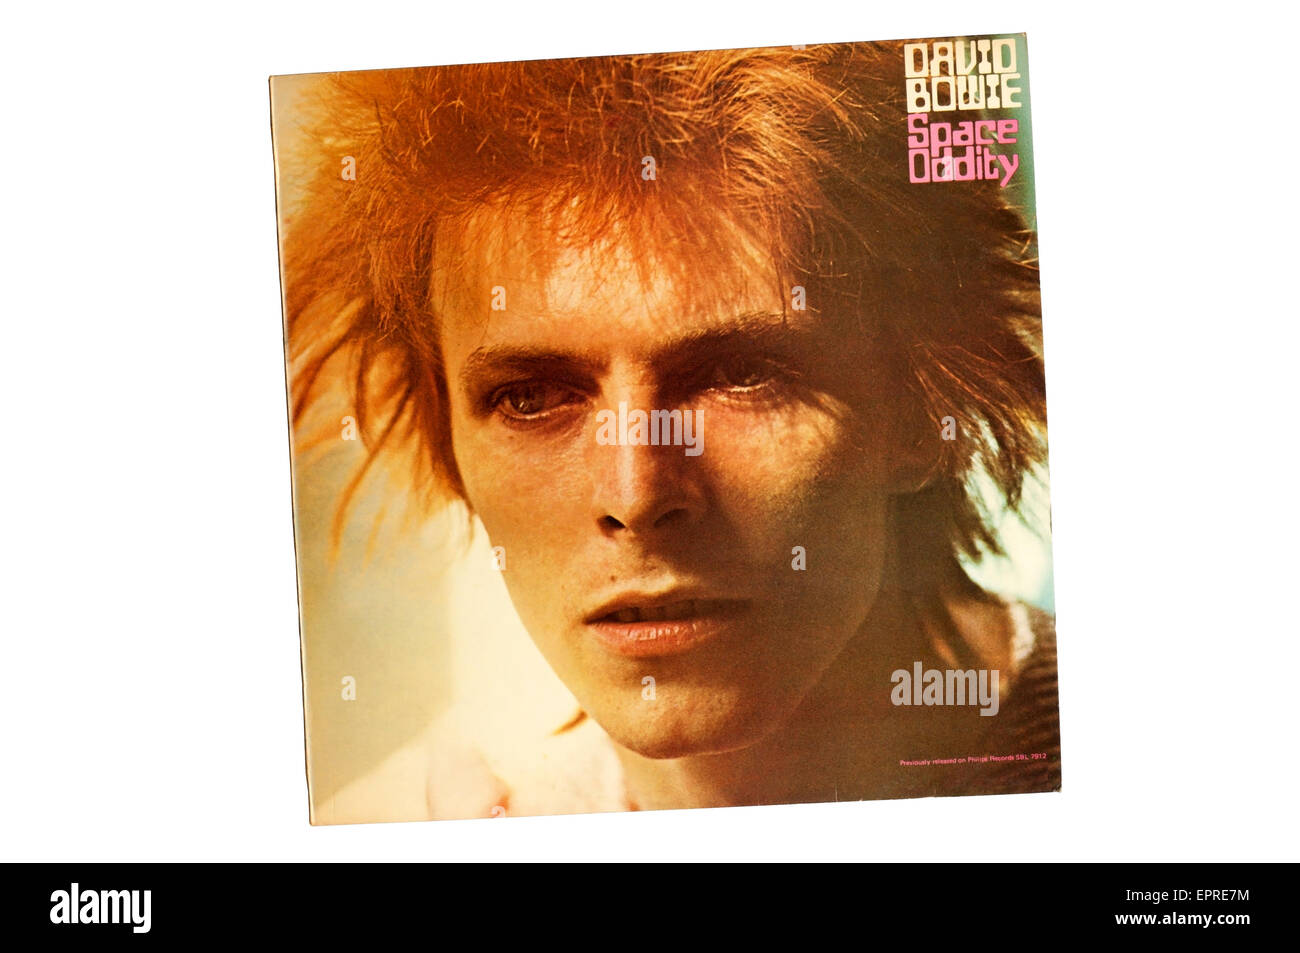 David Bowie or Space Oddity was the second studio album by English musician David Bowie. SEE DESCRIPTION FOR DETAILS. - Stock Image